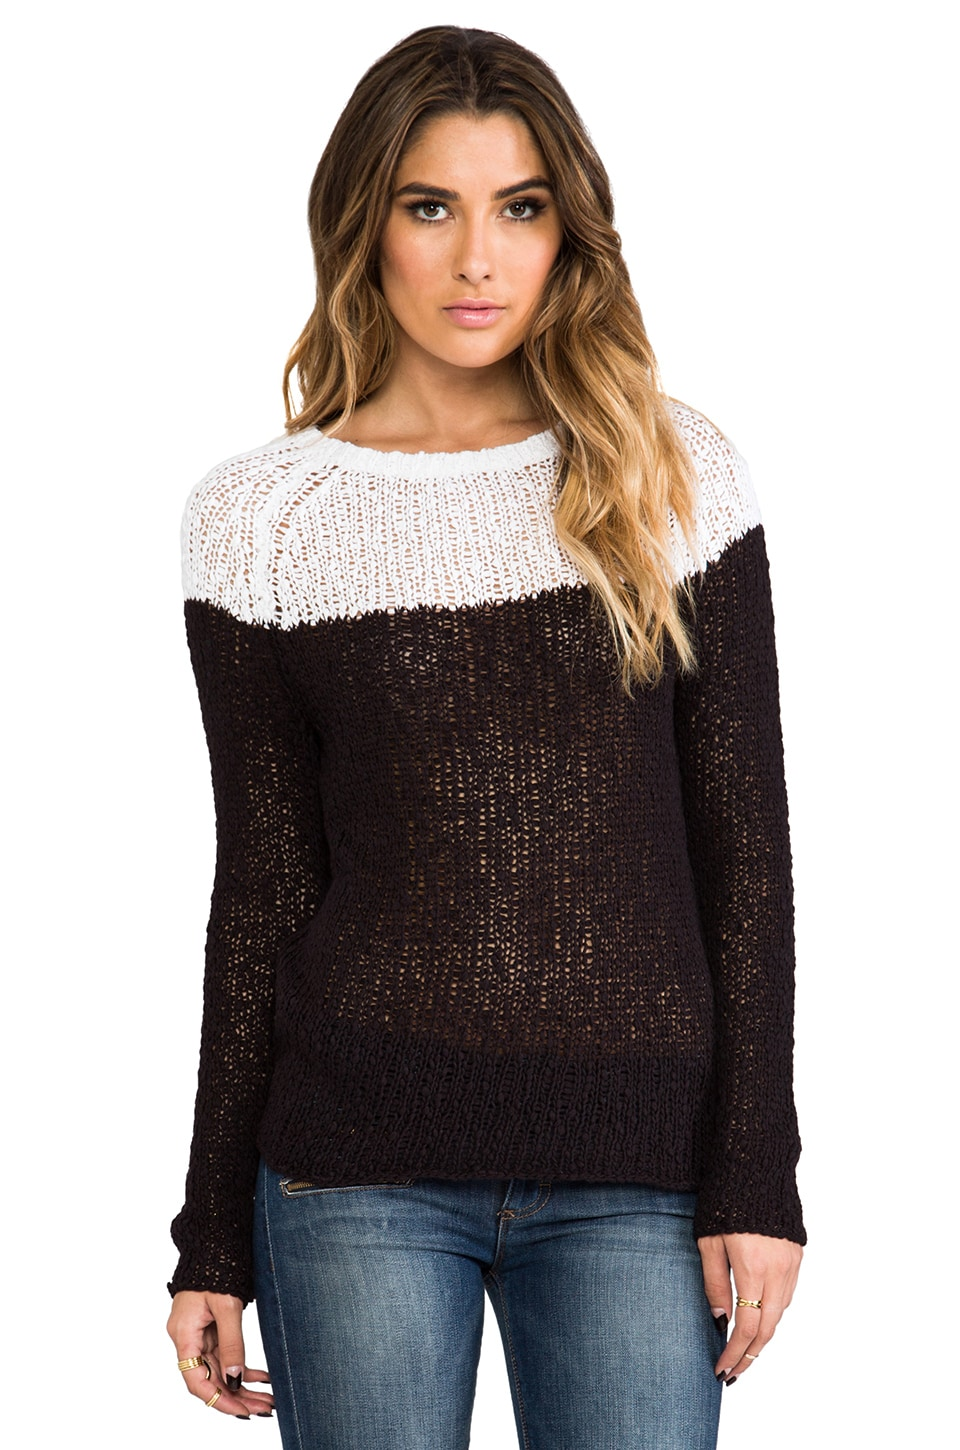 360 Sweater Ellie Colorblock Sweater in White & Black